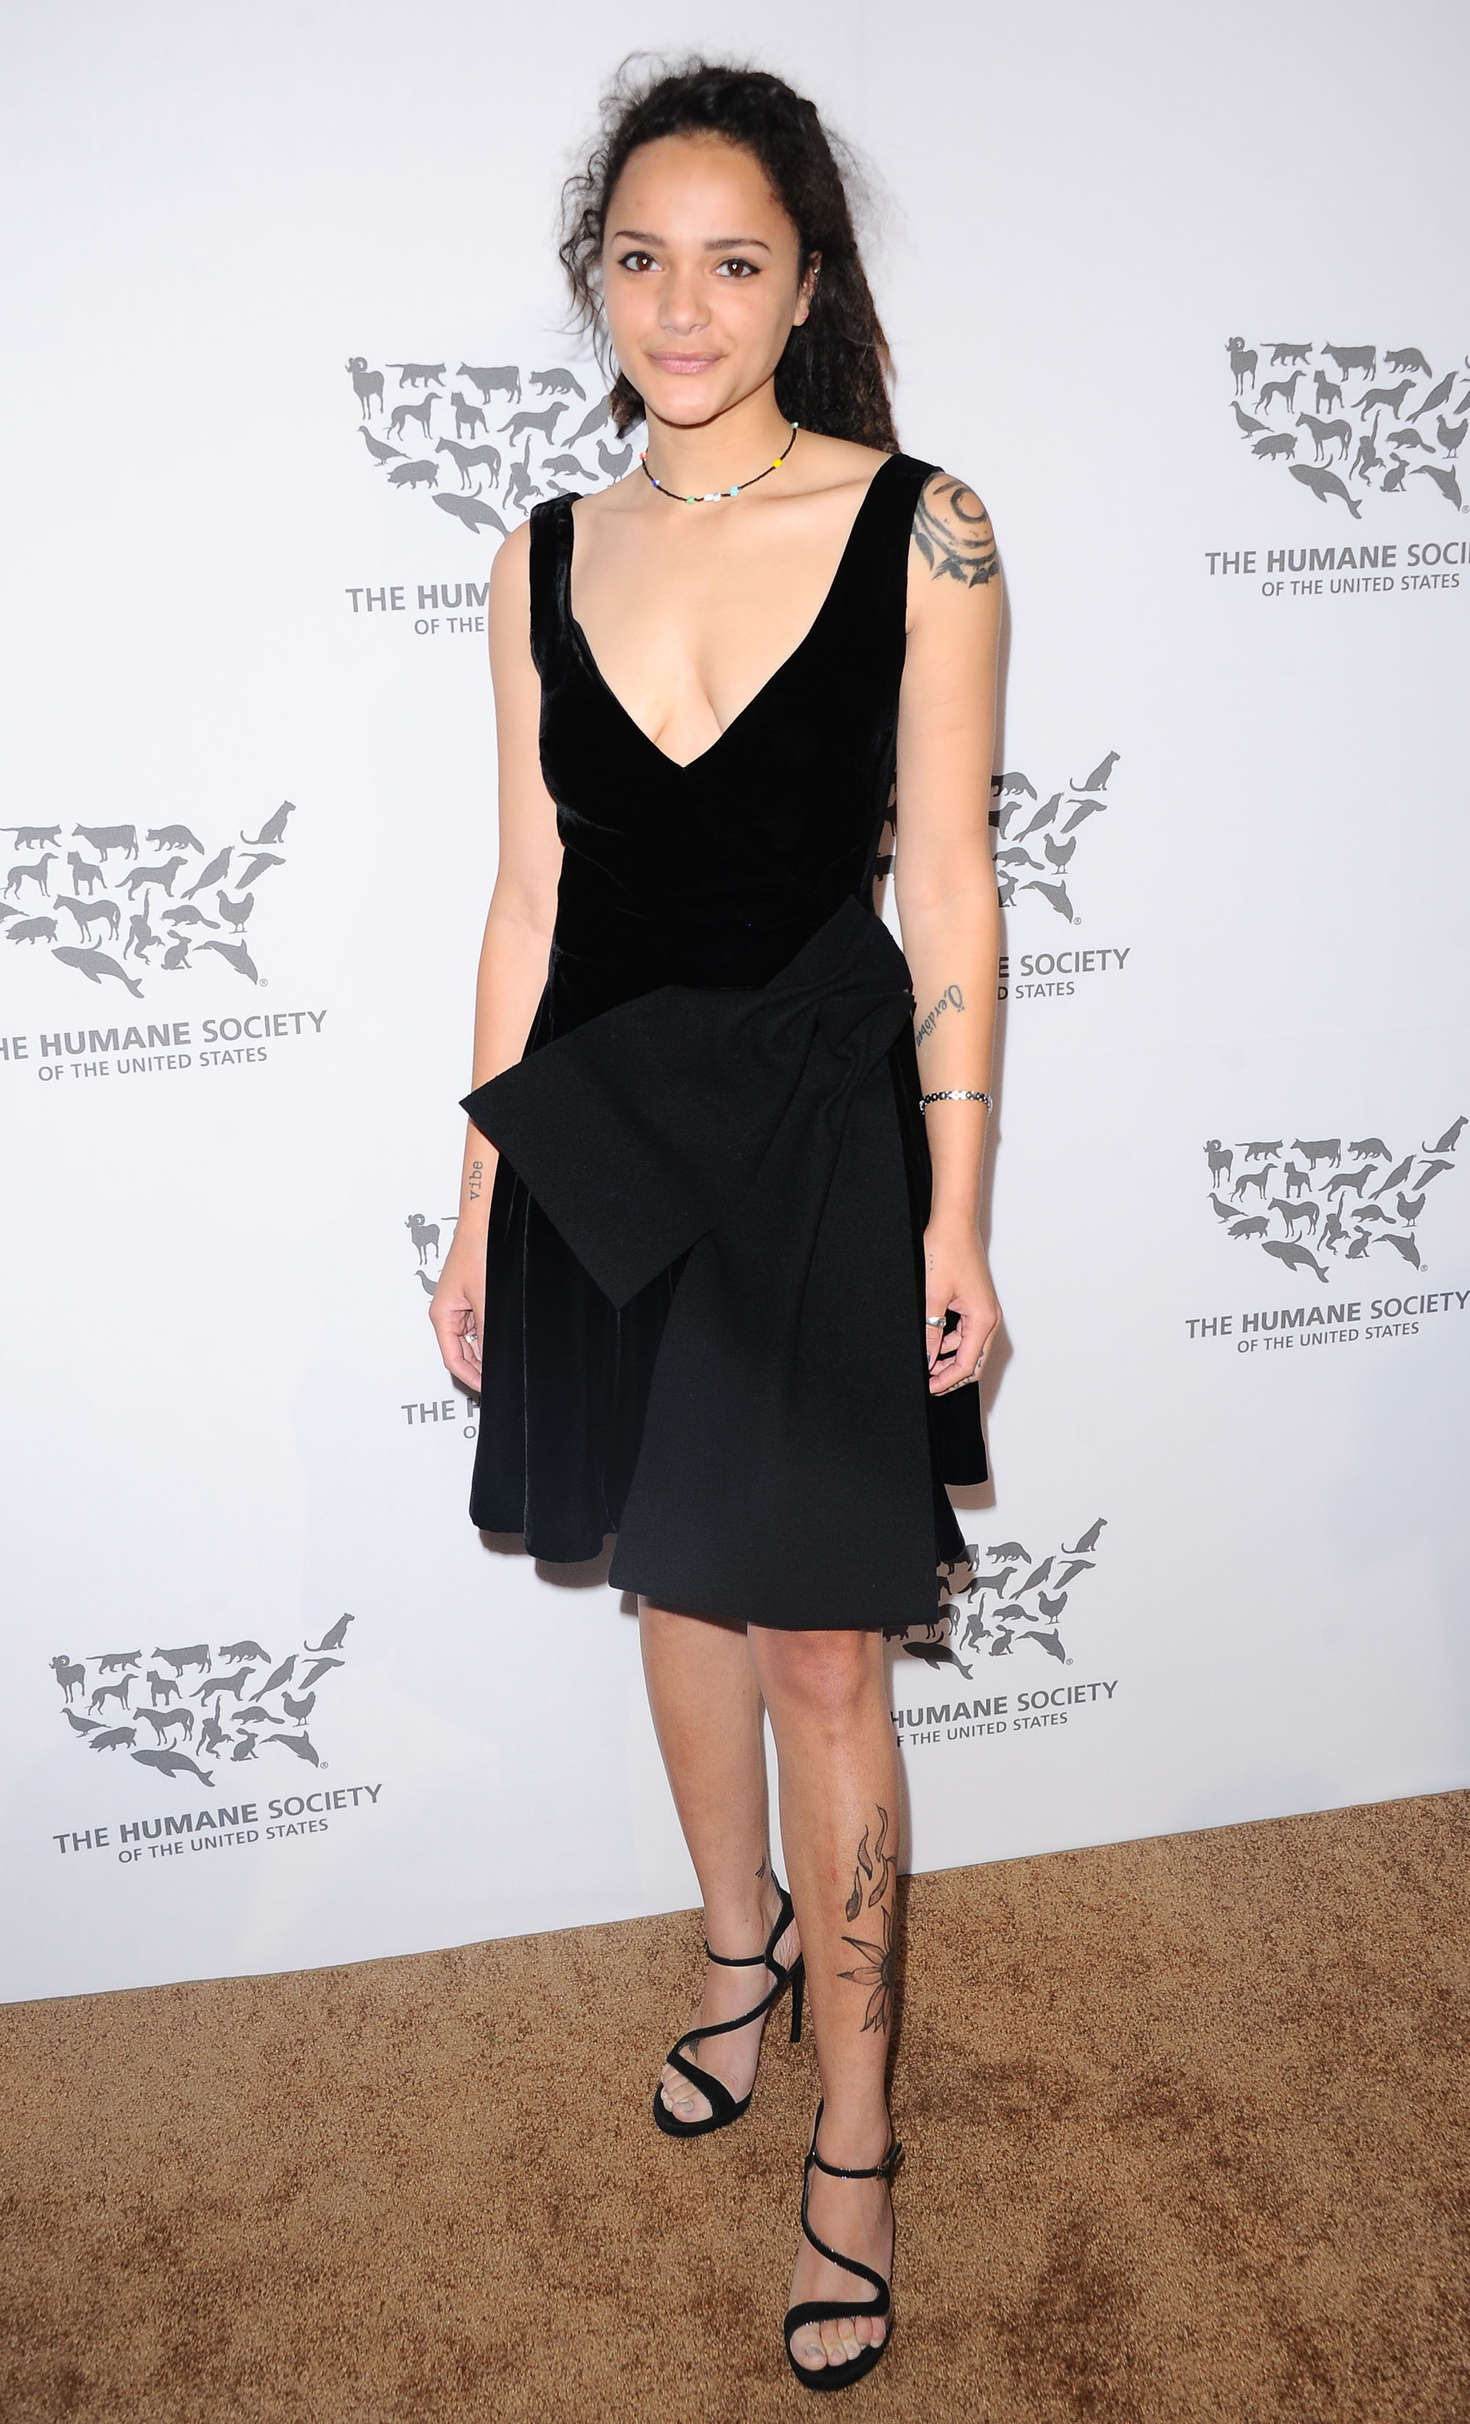 Sasha Lane The Humane Society Of The United States To The Rescue Gala in Hollywood